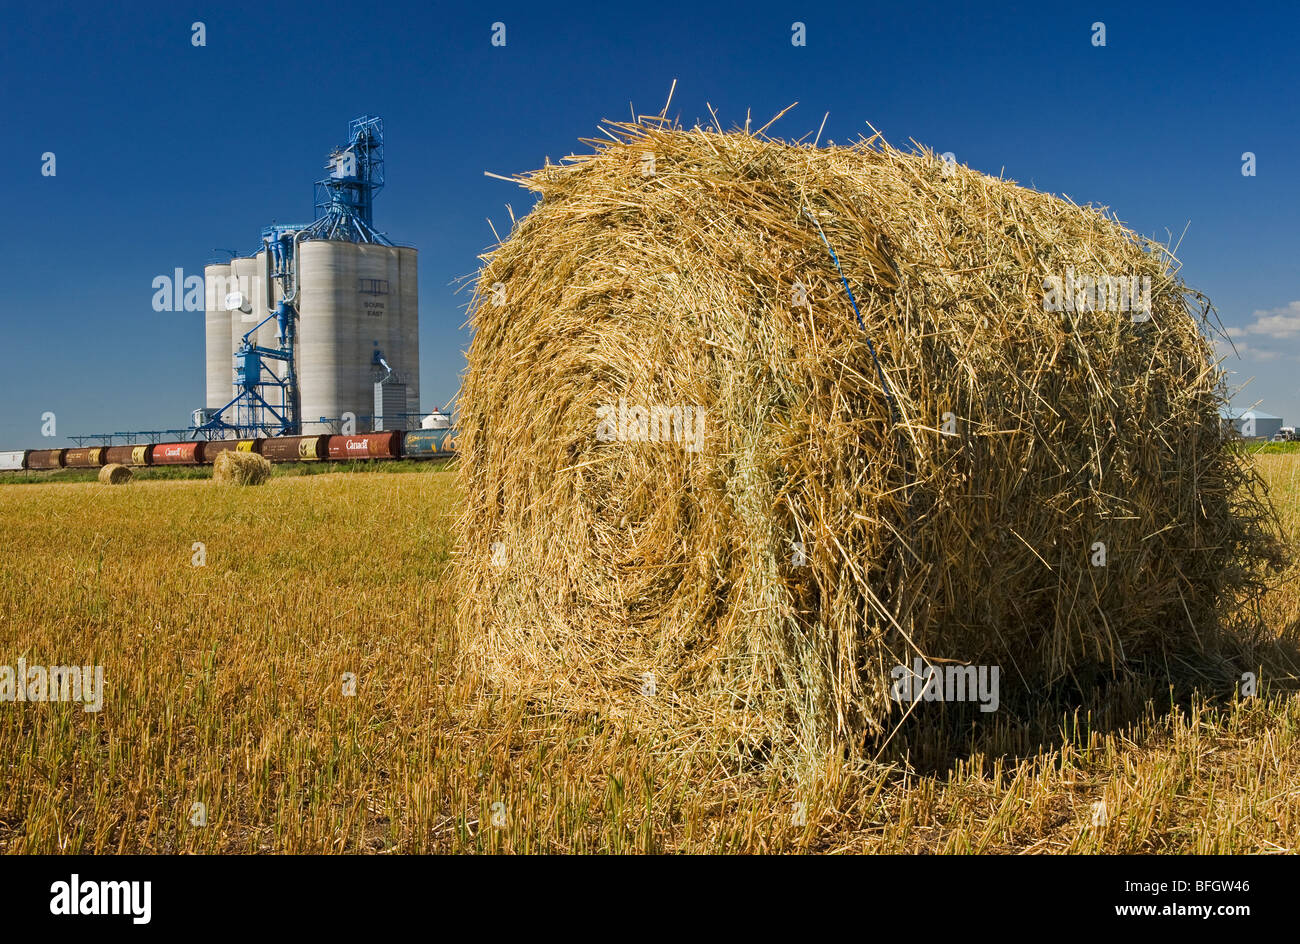 Inland grain terminal and oat roll near Souris, Manitoba, Canada - Stock Image